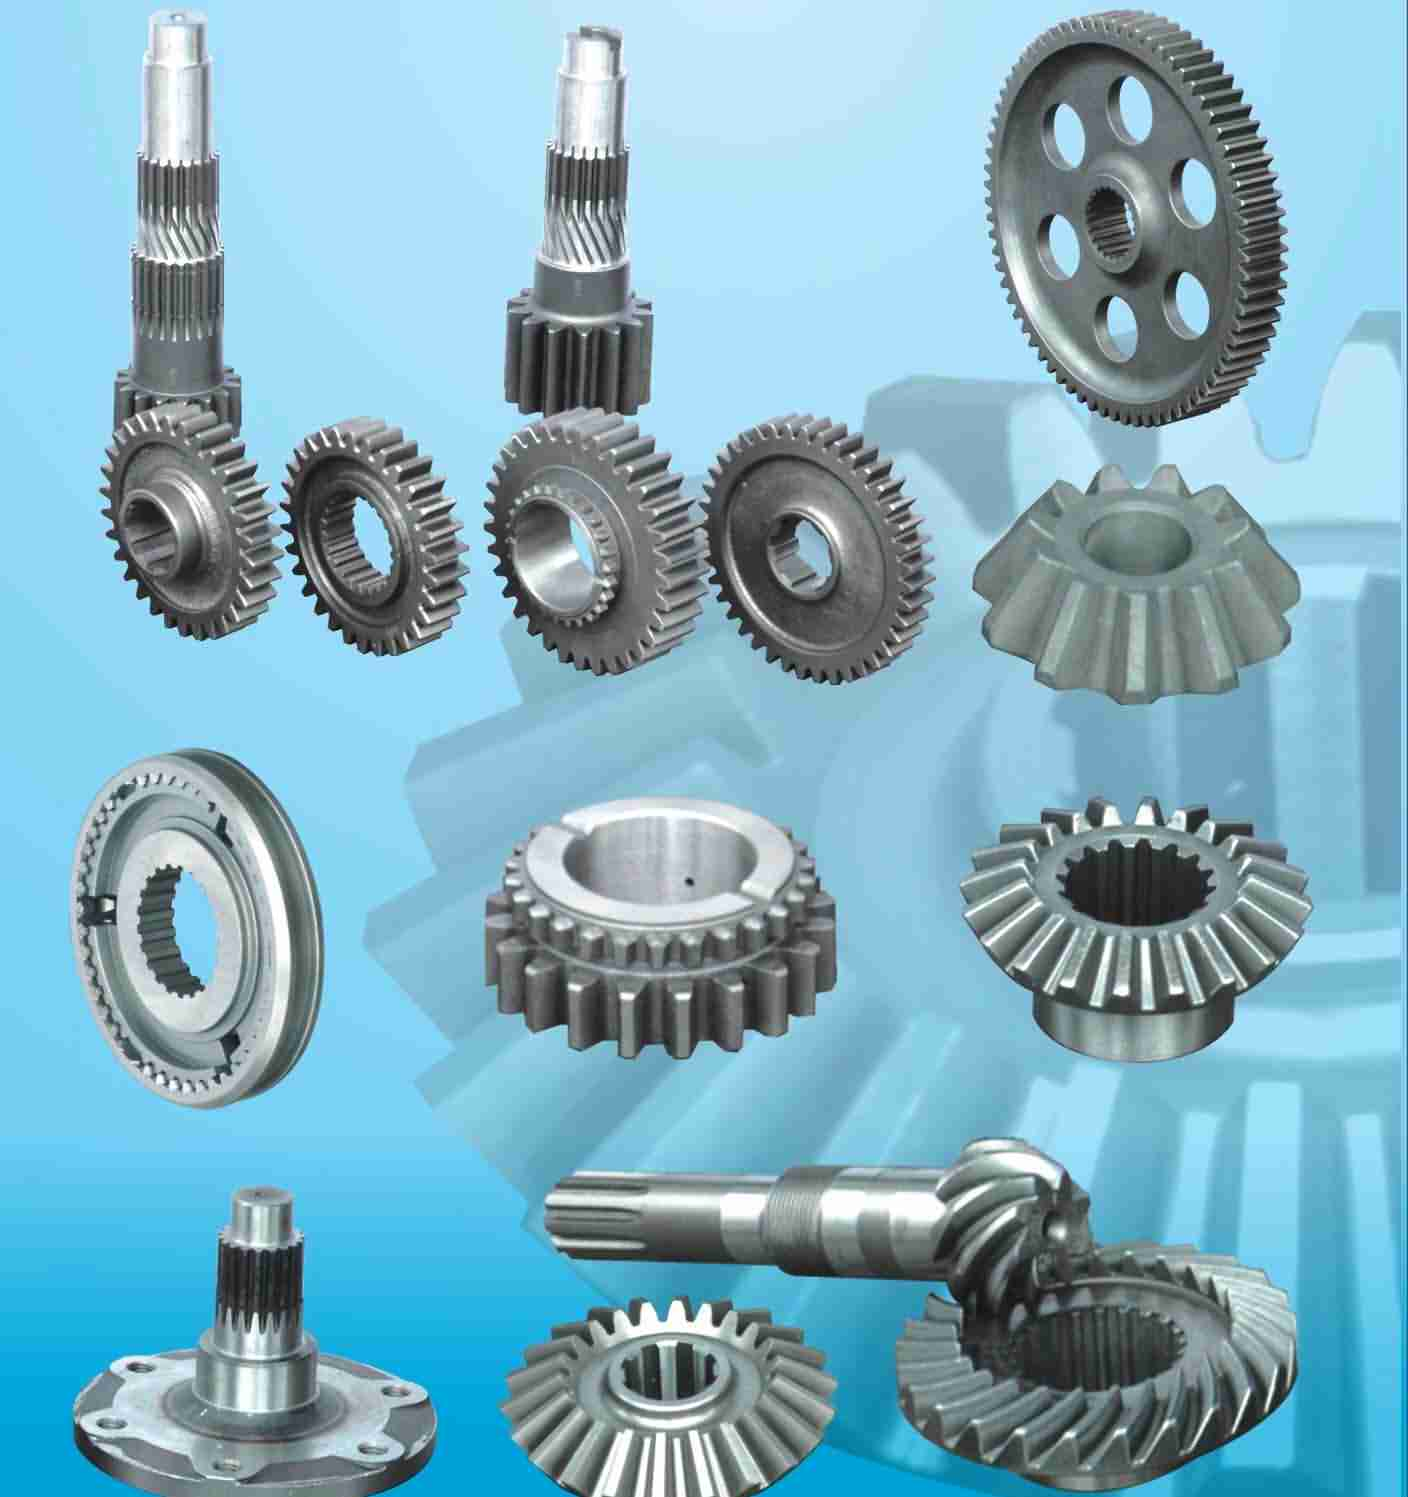 planet carriers    ring gears   Differential gears   spline shafts&gear shafts   SpUR gears & HELICAL GEARS   Worm gears bevel gears, sprial bevel gears racks